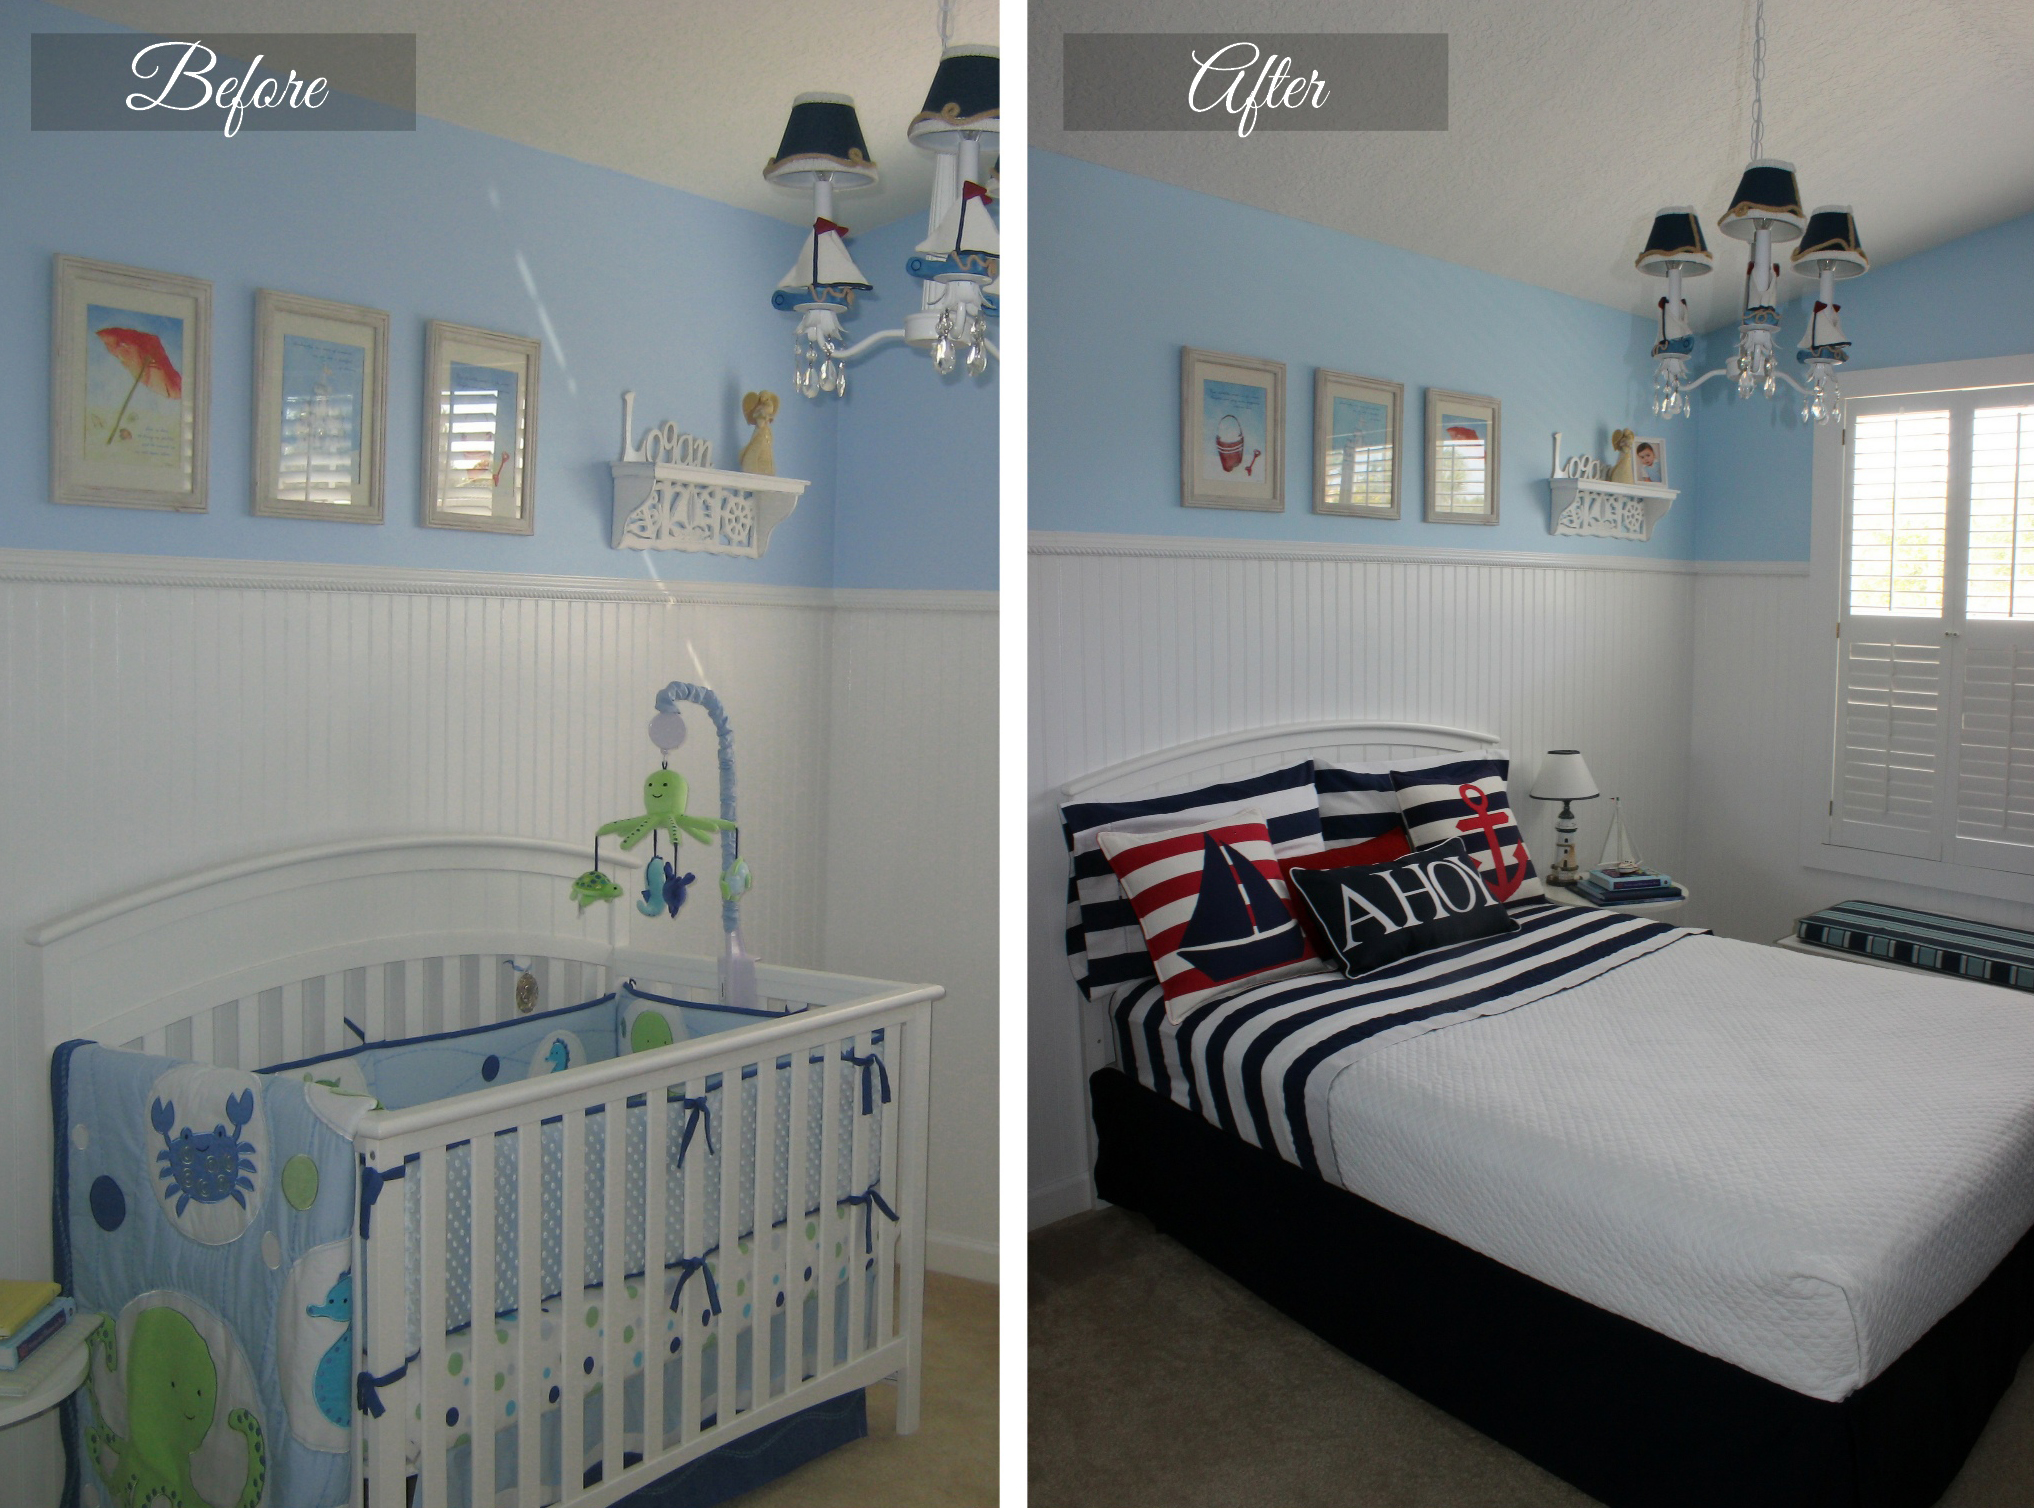 Before & After: Convert a Nursery to Toddler's Room